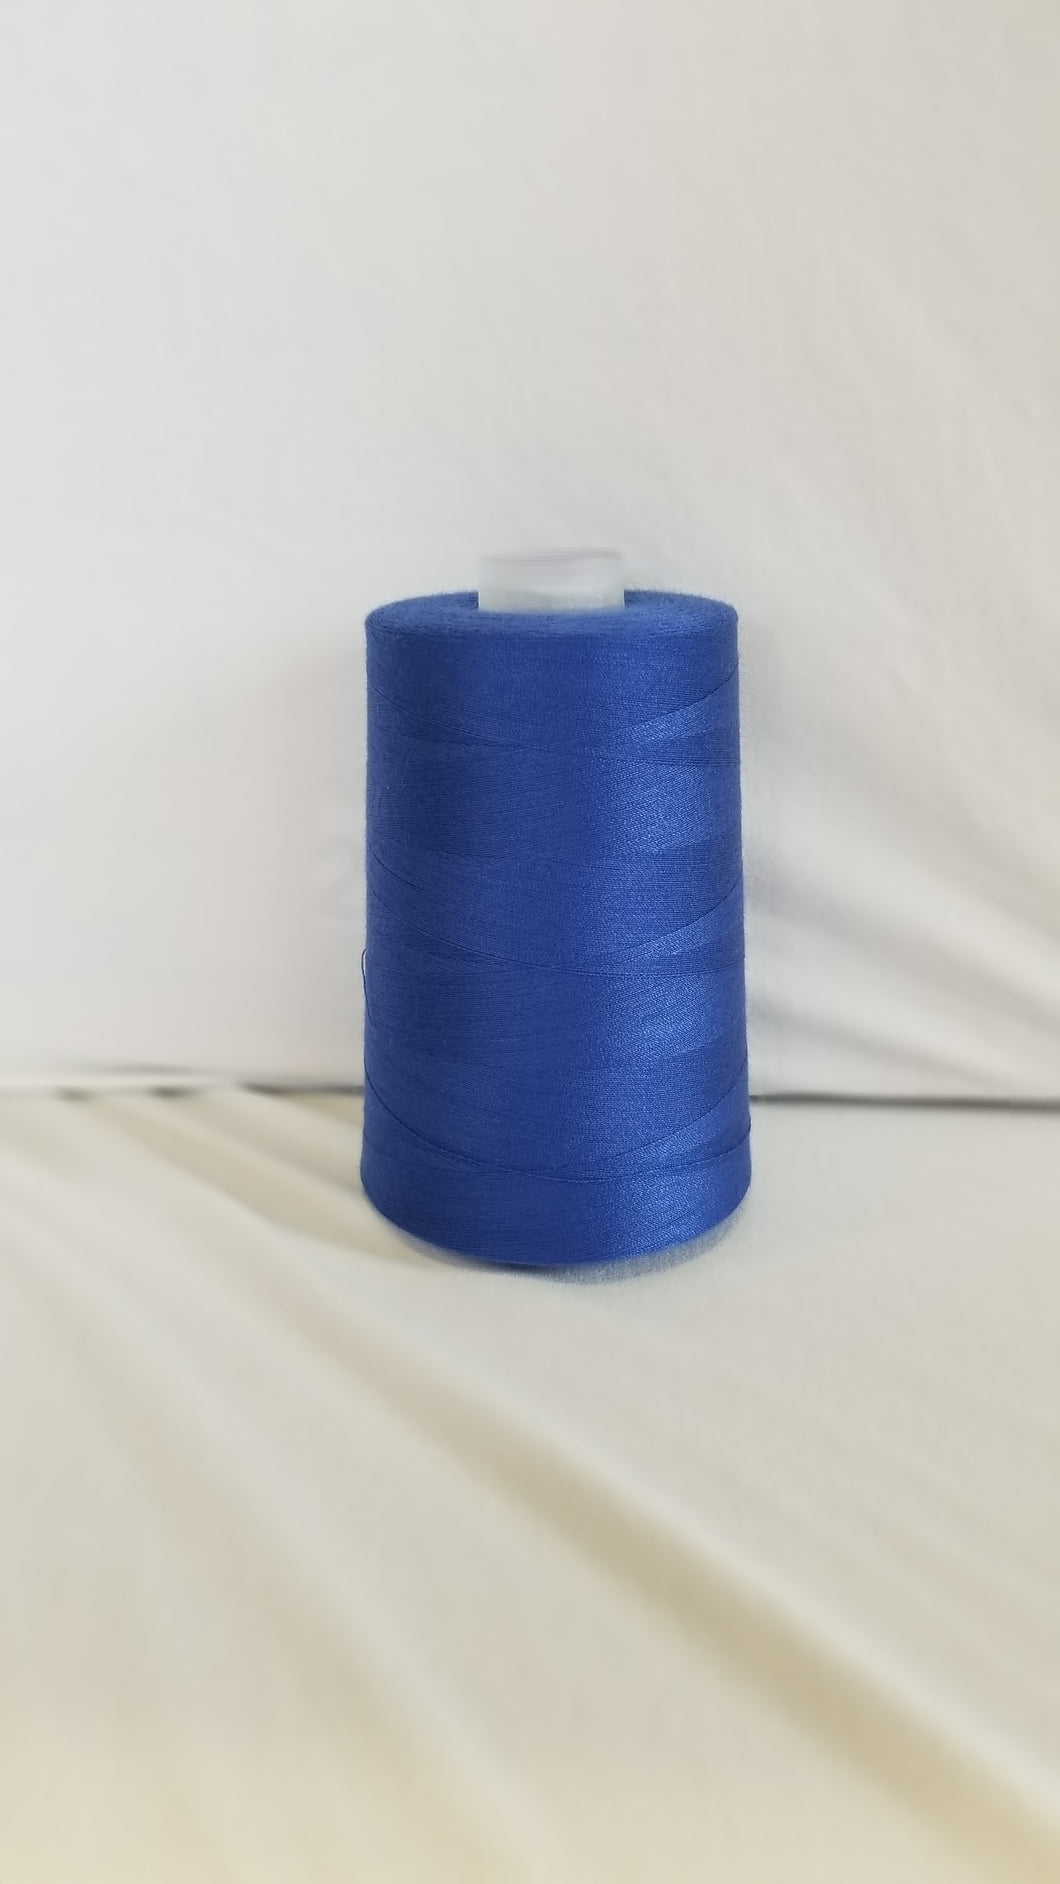 Fil 6000 verges bleu royal (324) Polyester